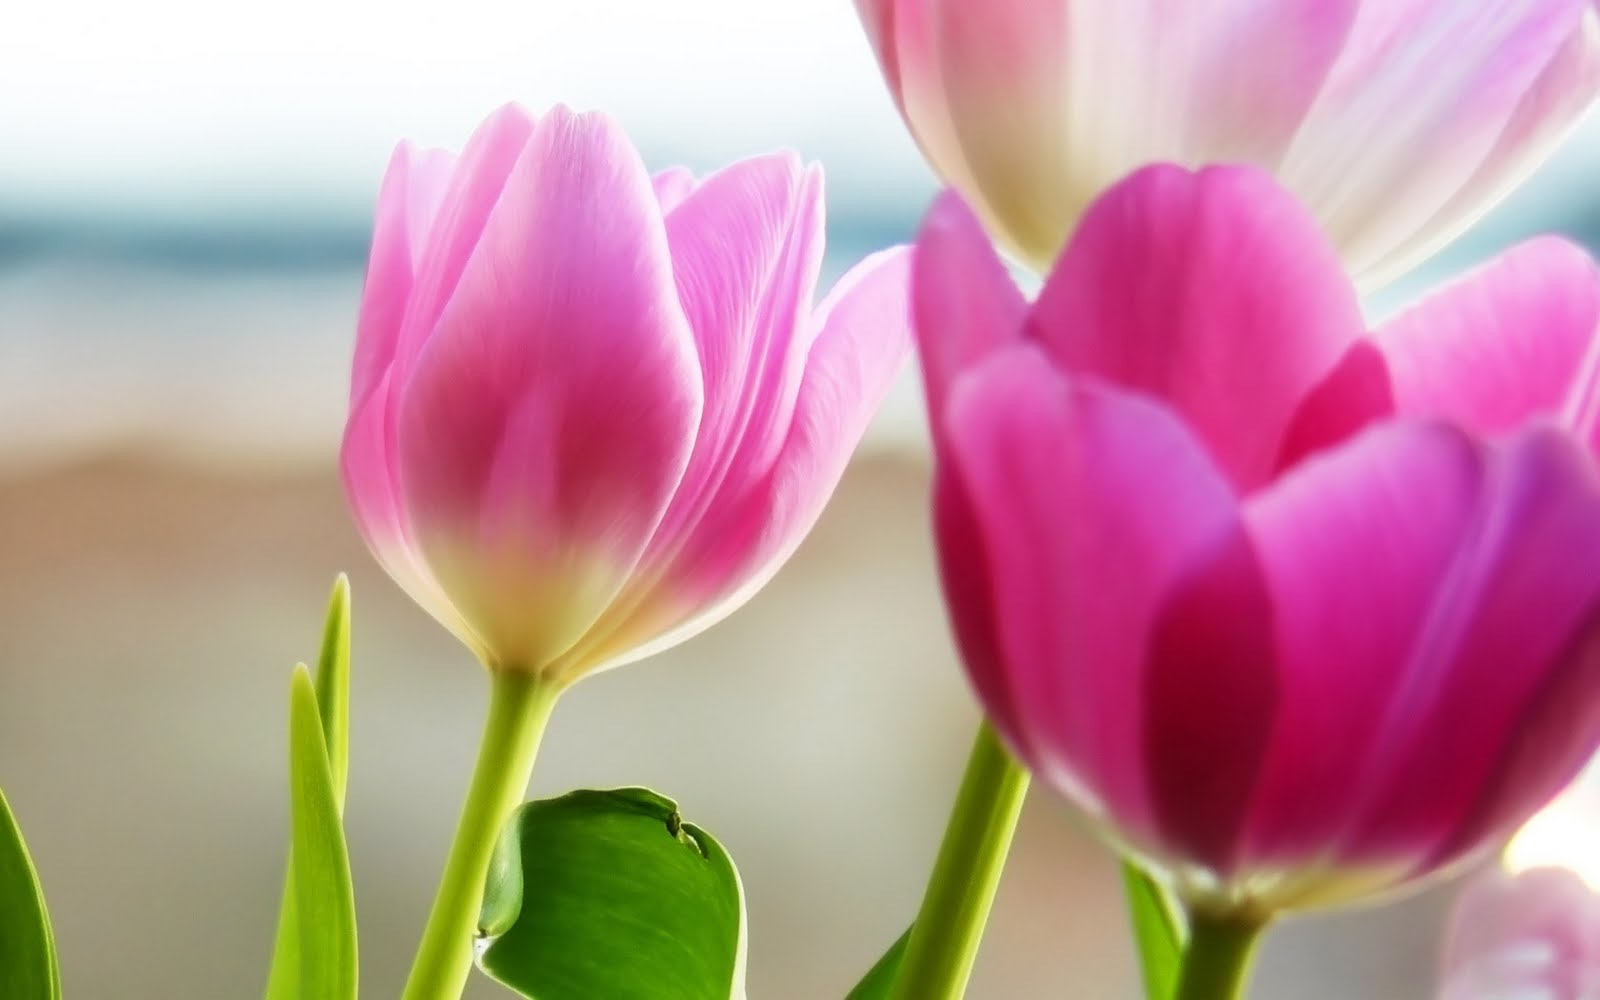 Home Insurance  Rare Fragrance Flowers HQ Pc Wallpapers Beautiful Pink Tulips Flowers 3D Widescreen Hd wallpapers